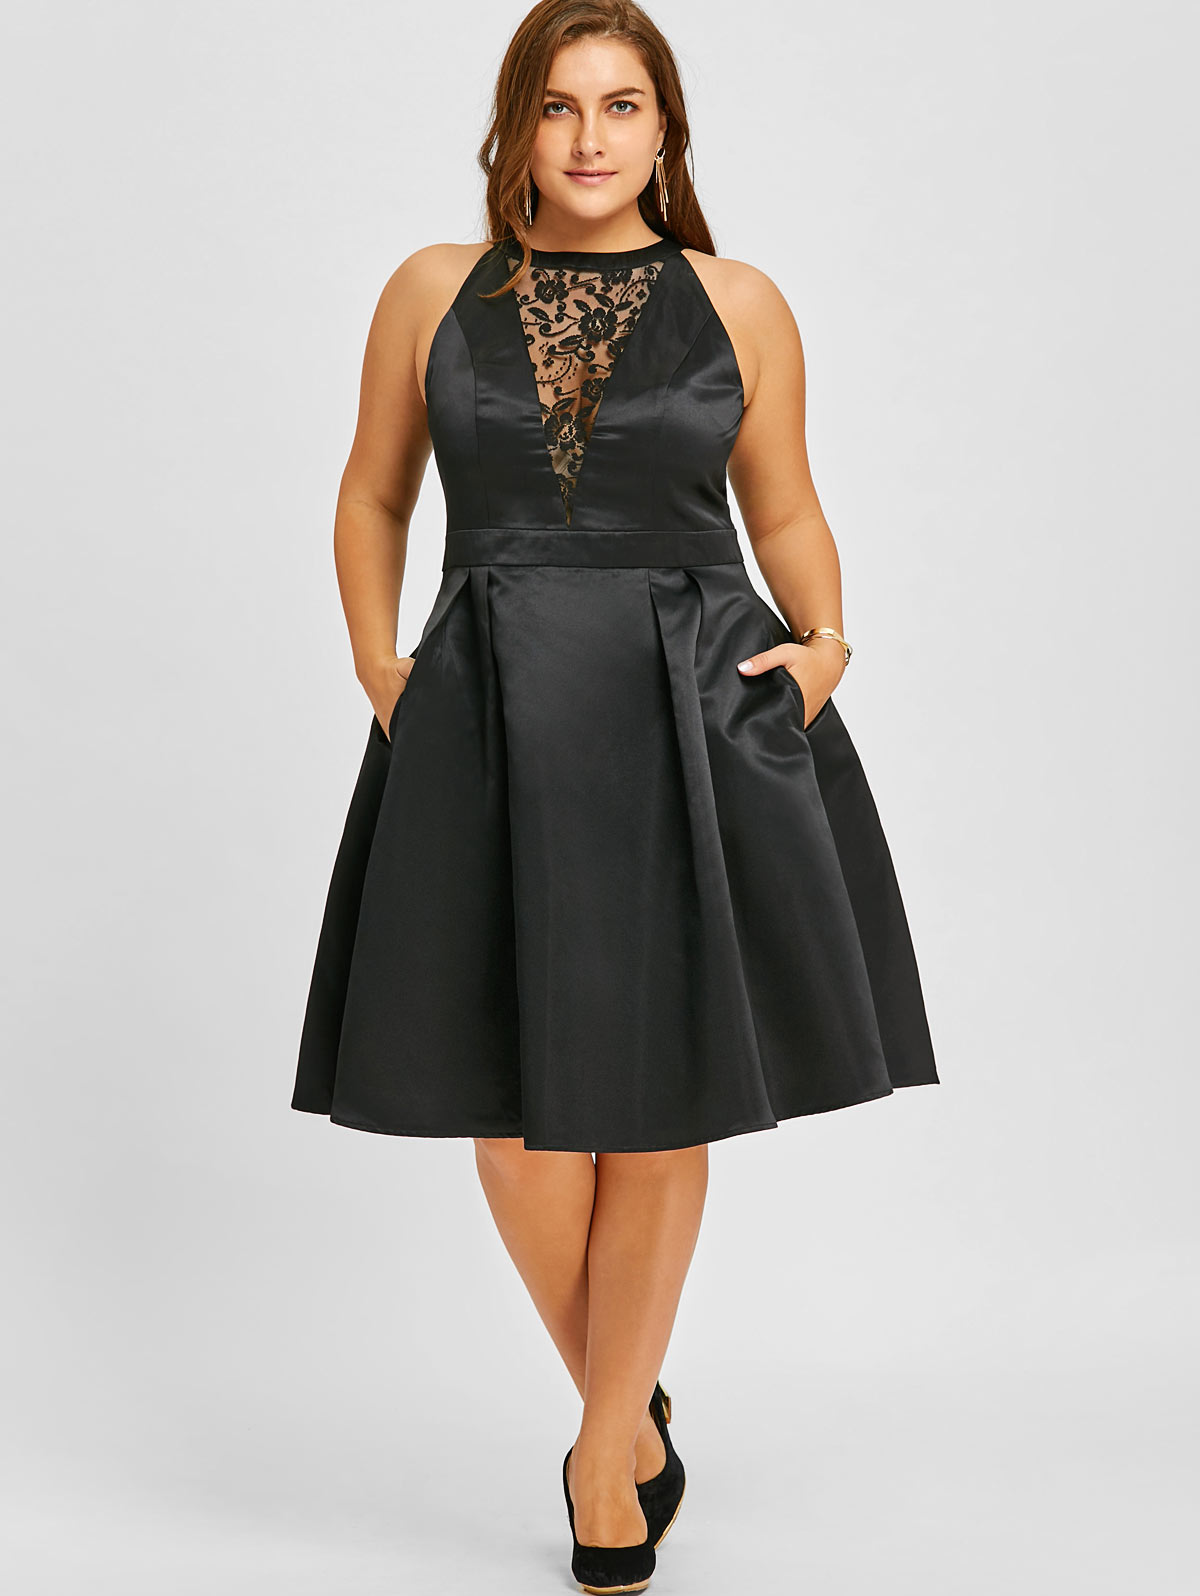 Wipalo Sexy Women Large Size Lace Insert Sleeveless Swing Dress Ladies O-Neck Party Hollow Out Vestidos Female Plus Size 5XL